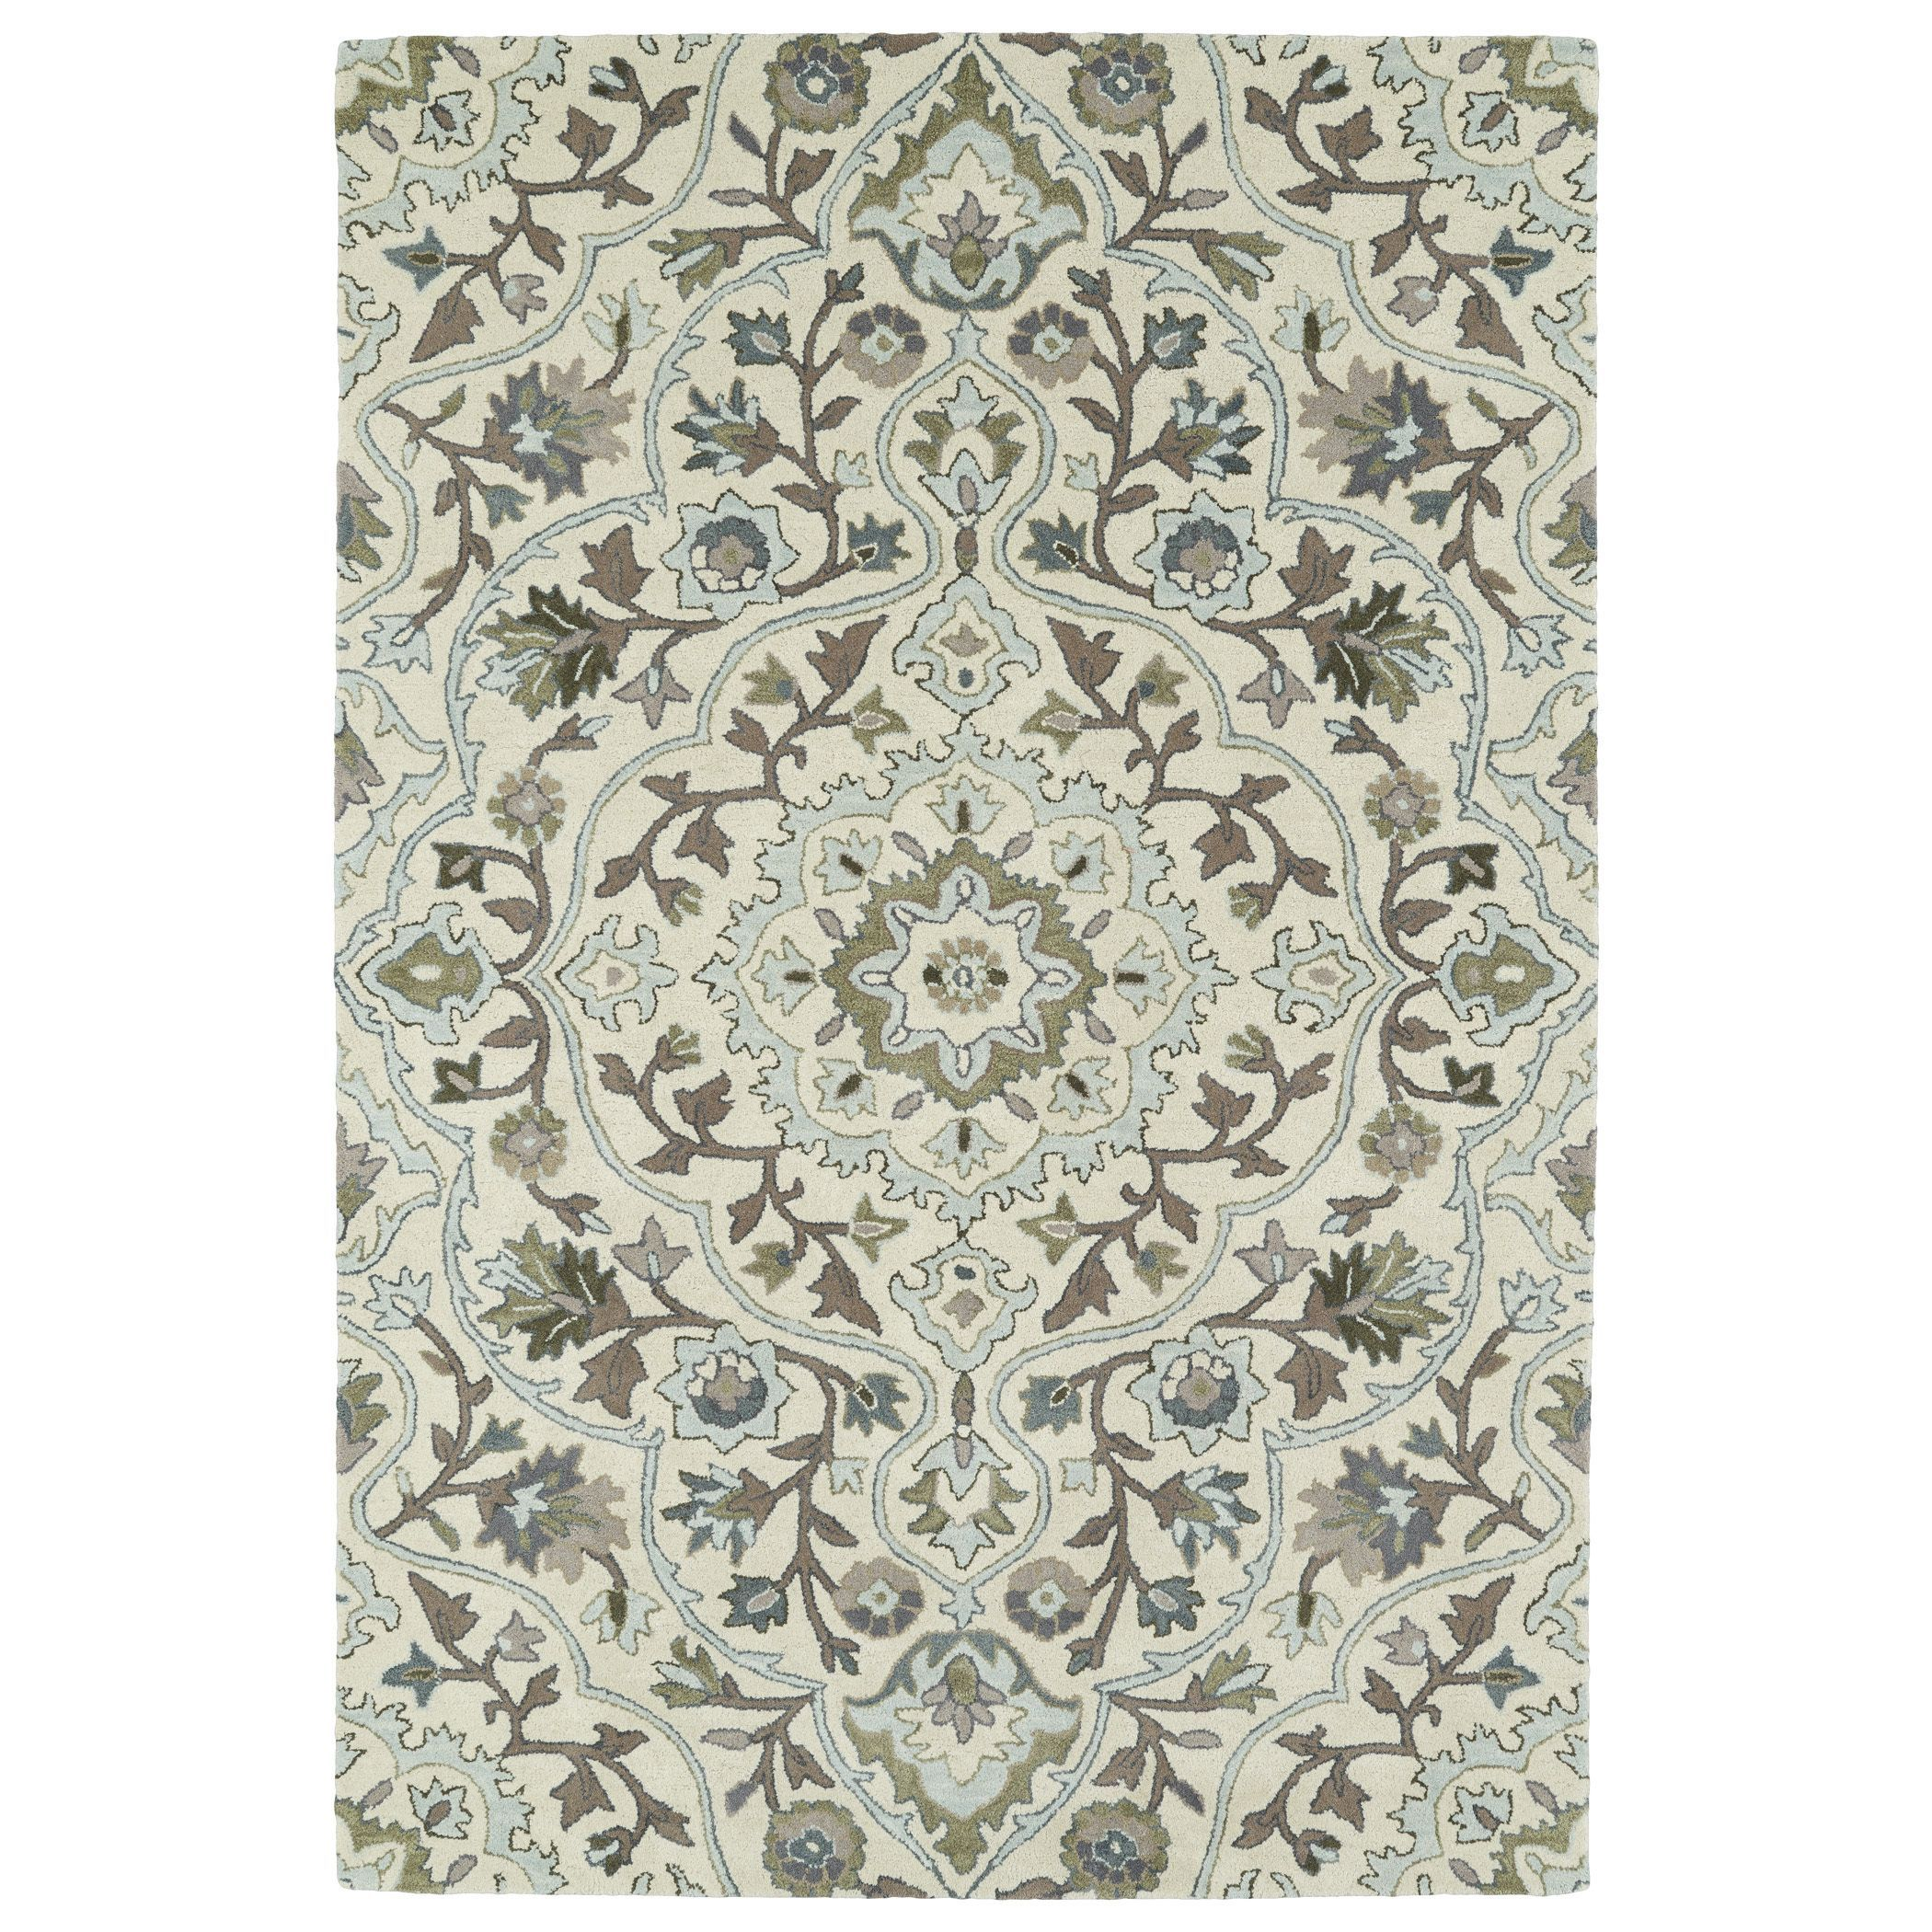 Kaleen Rugs Hand-Tufted Perry Medallion Beige Wool Rug (9'0 x 12'0) (9'0 x 12'0), Size 9' x 12'